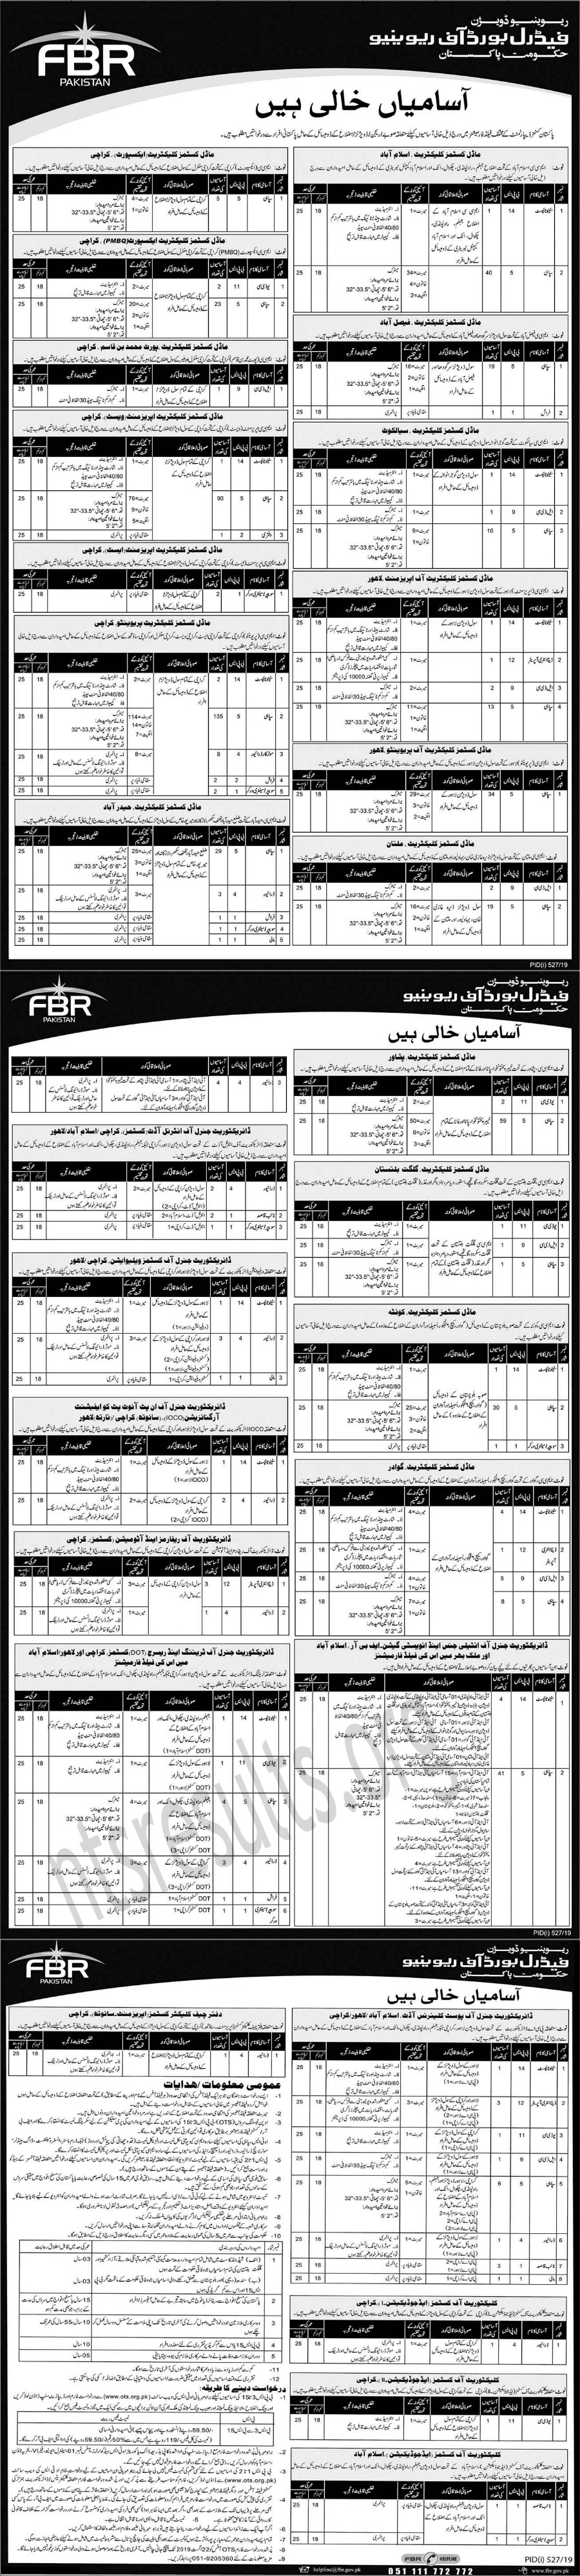 Federal Board of Revenue FBR Jobs OTS  Test Result